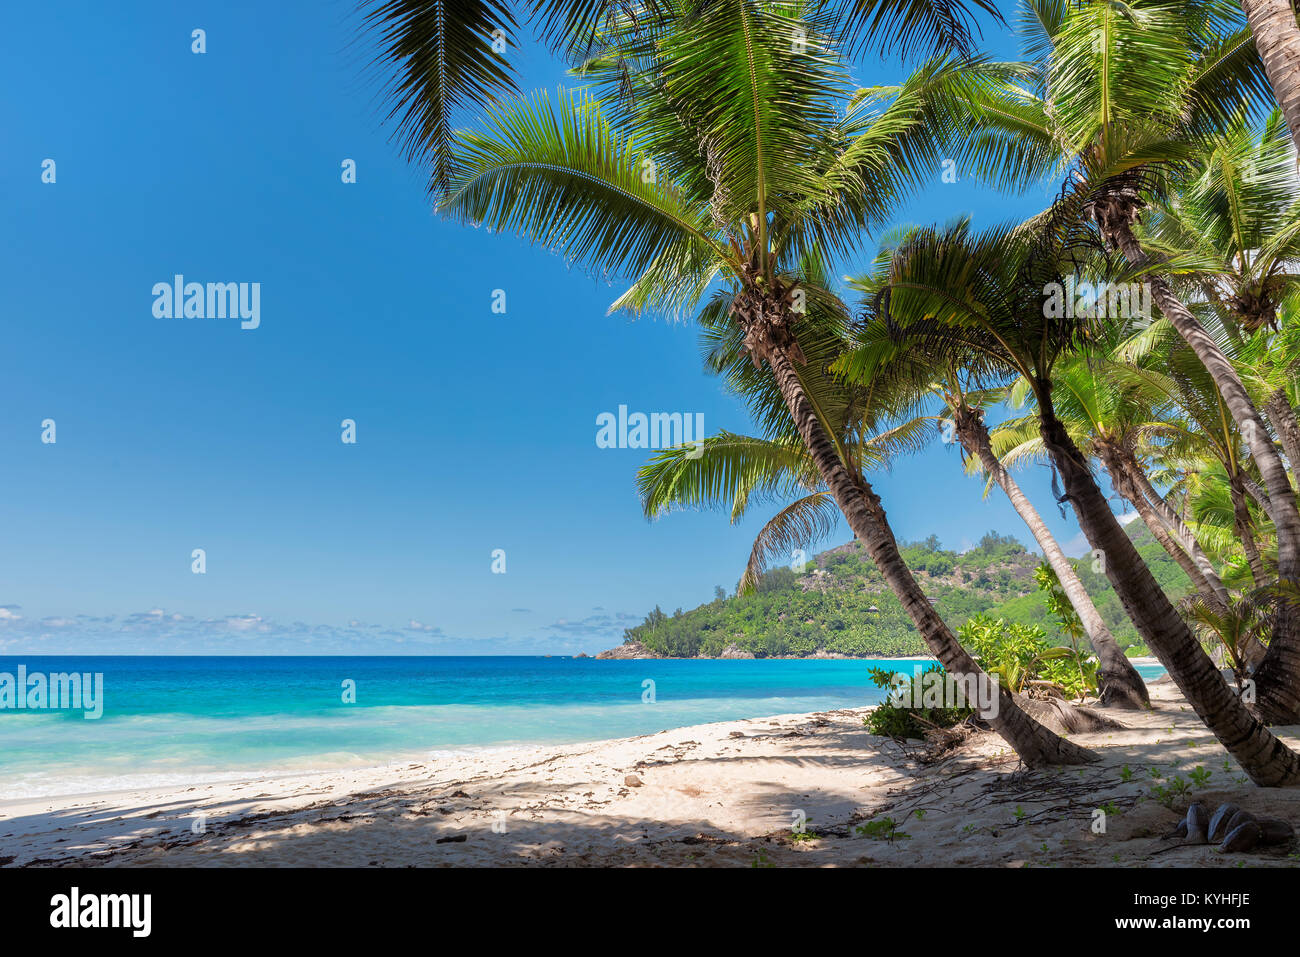 View of nice tropical beach with palms around. - Stock Image